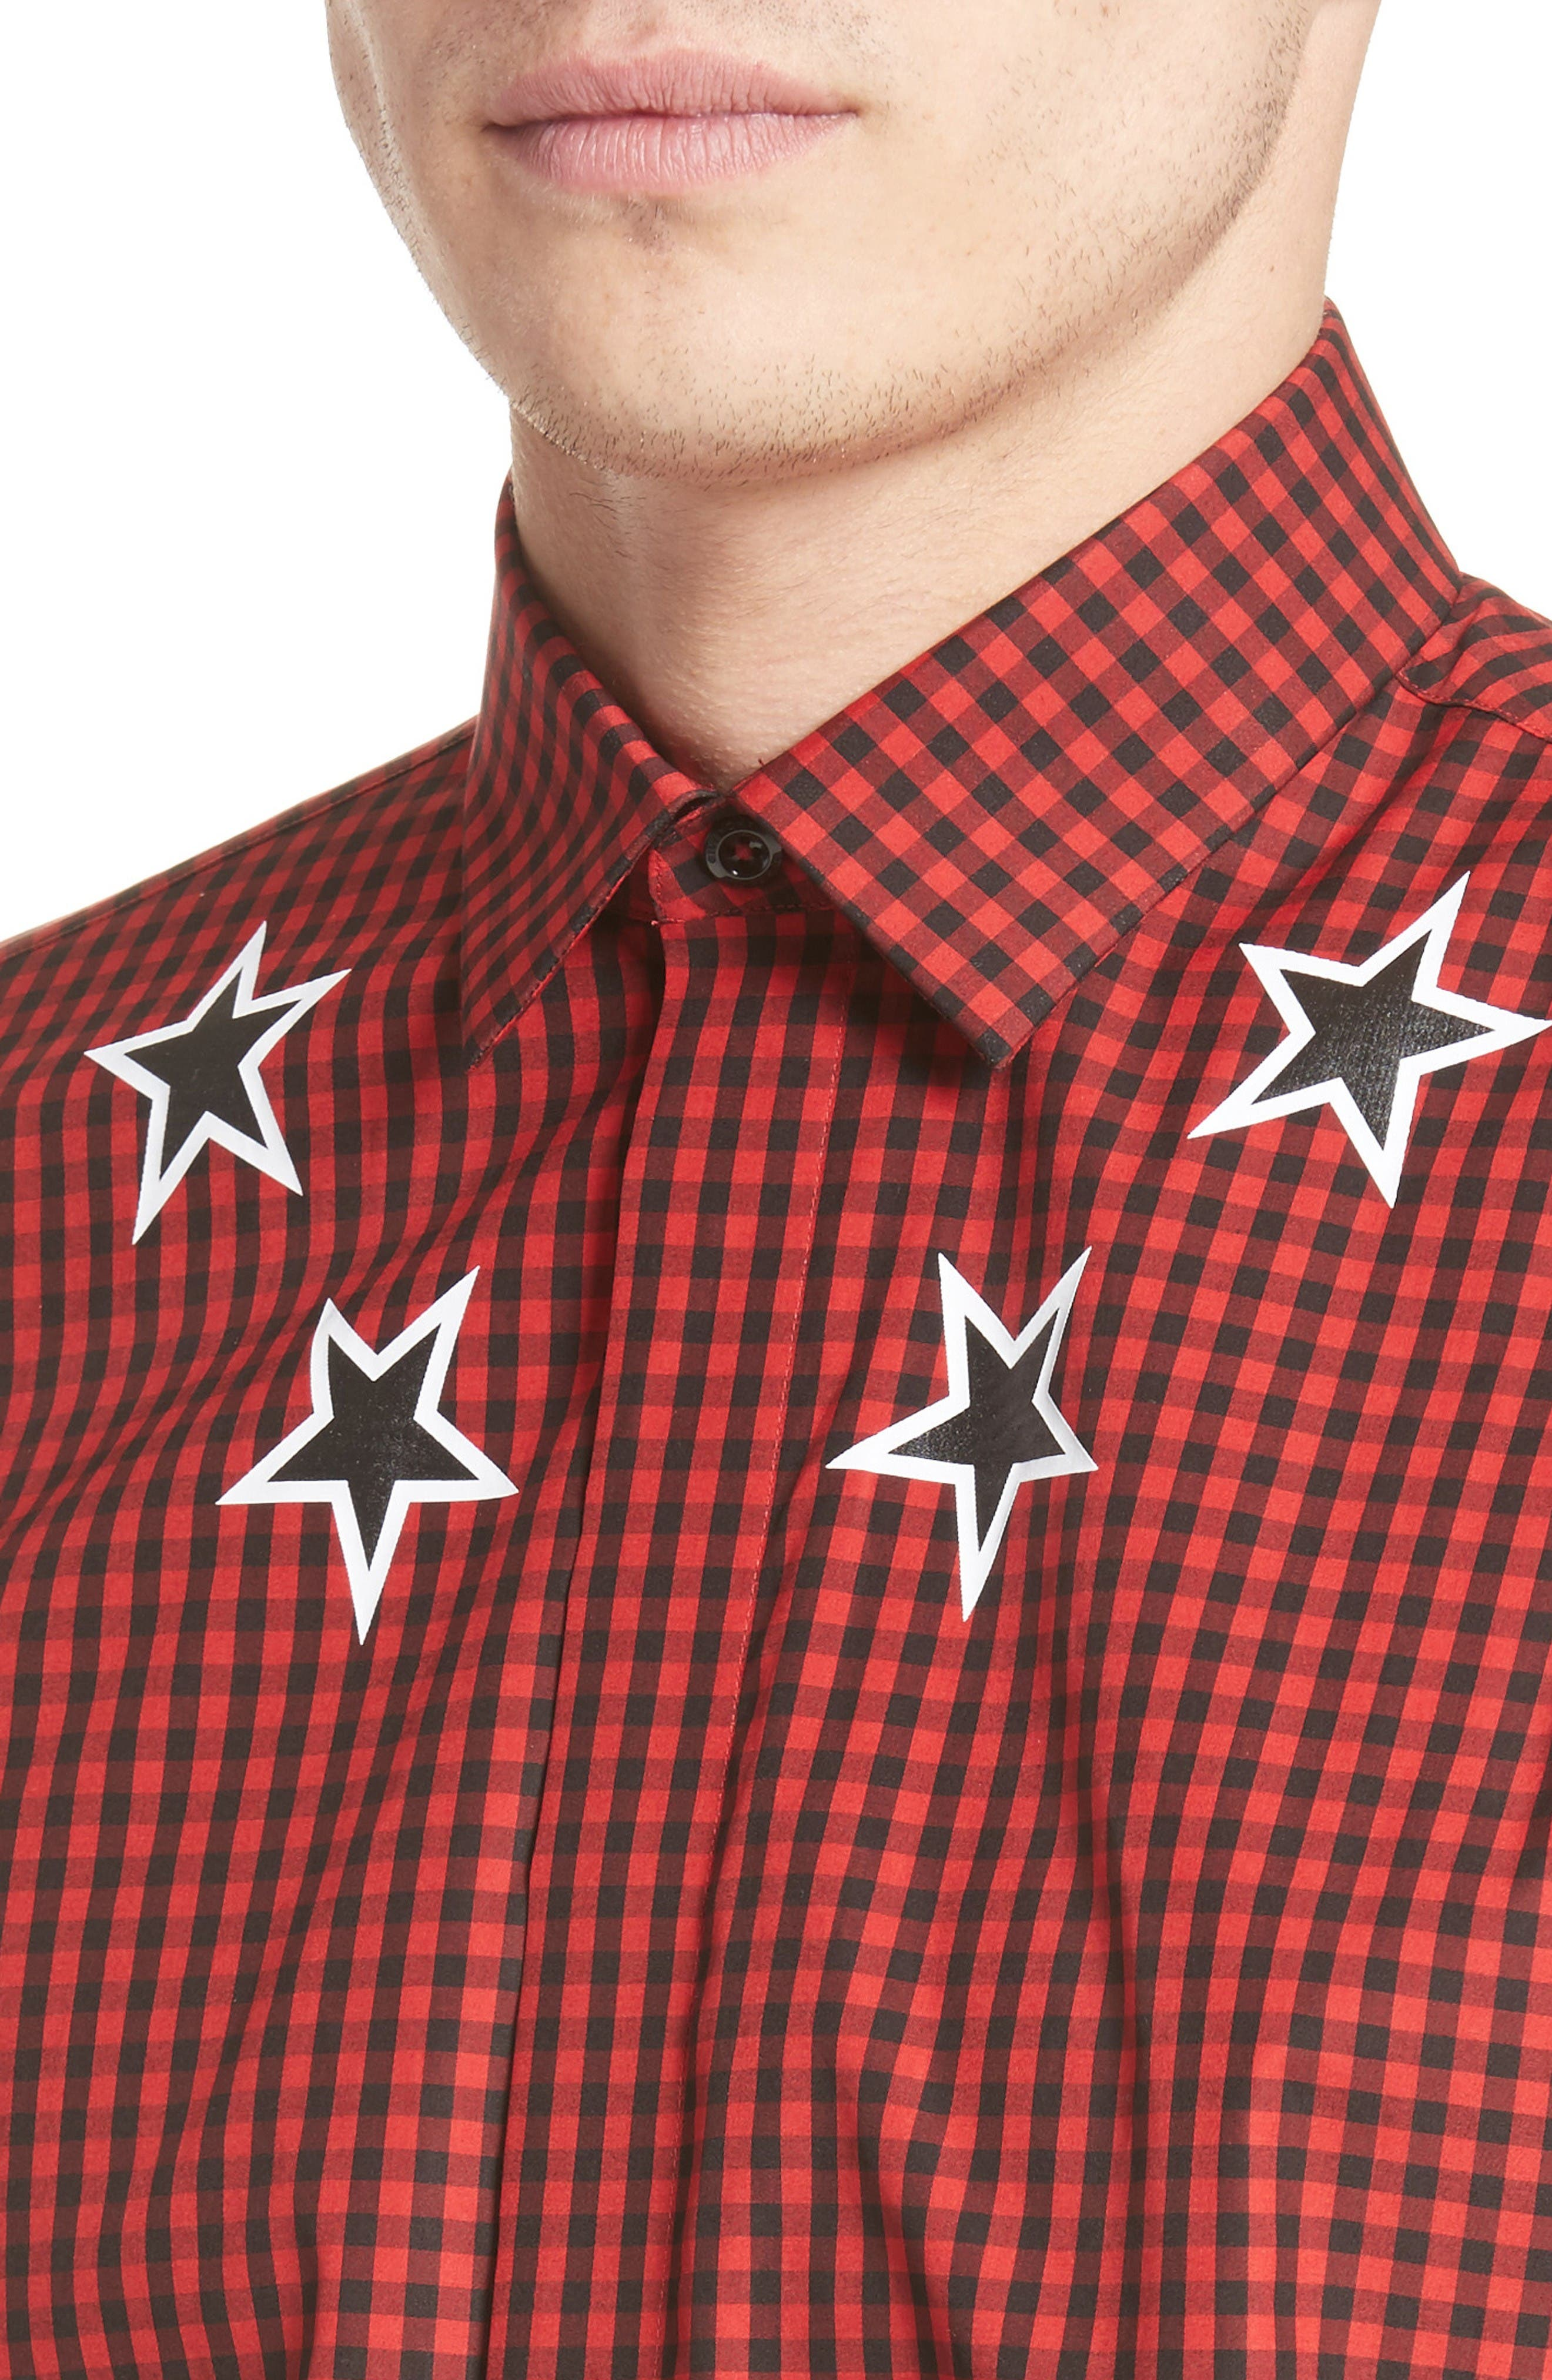 Extra Trim Fit Star Gingham Sport Shirt,                             Alternate thumbnail 4, color,                             Red